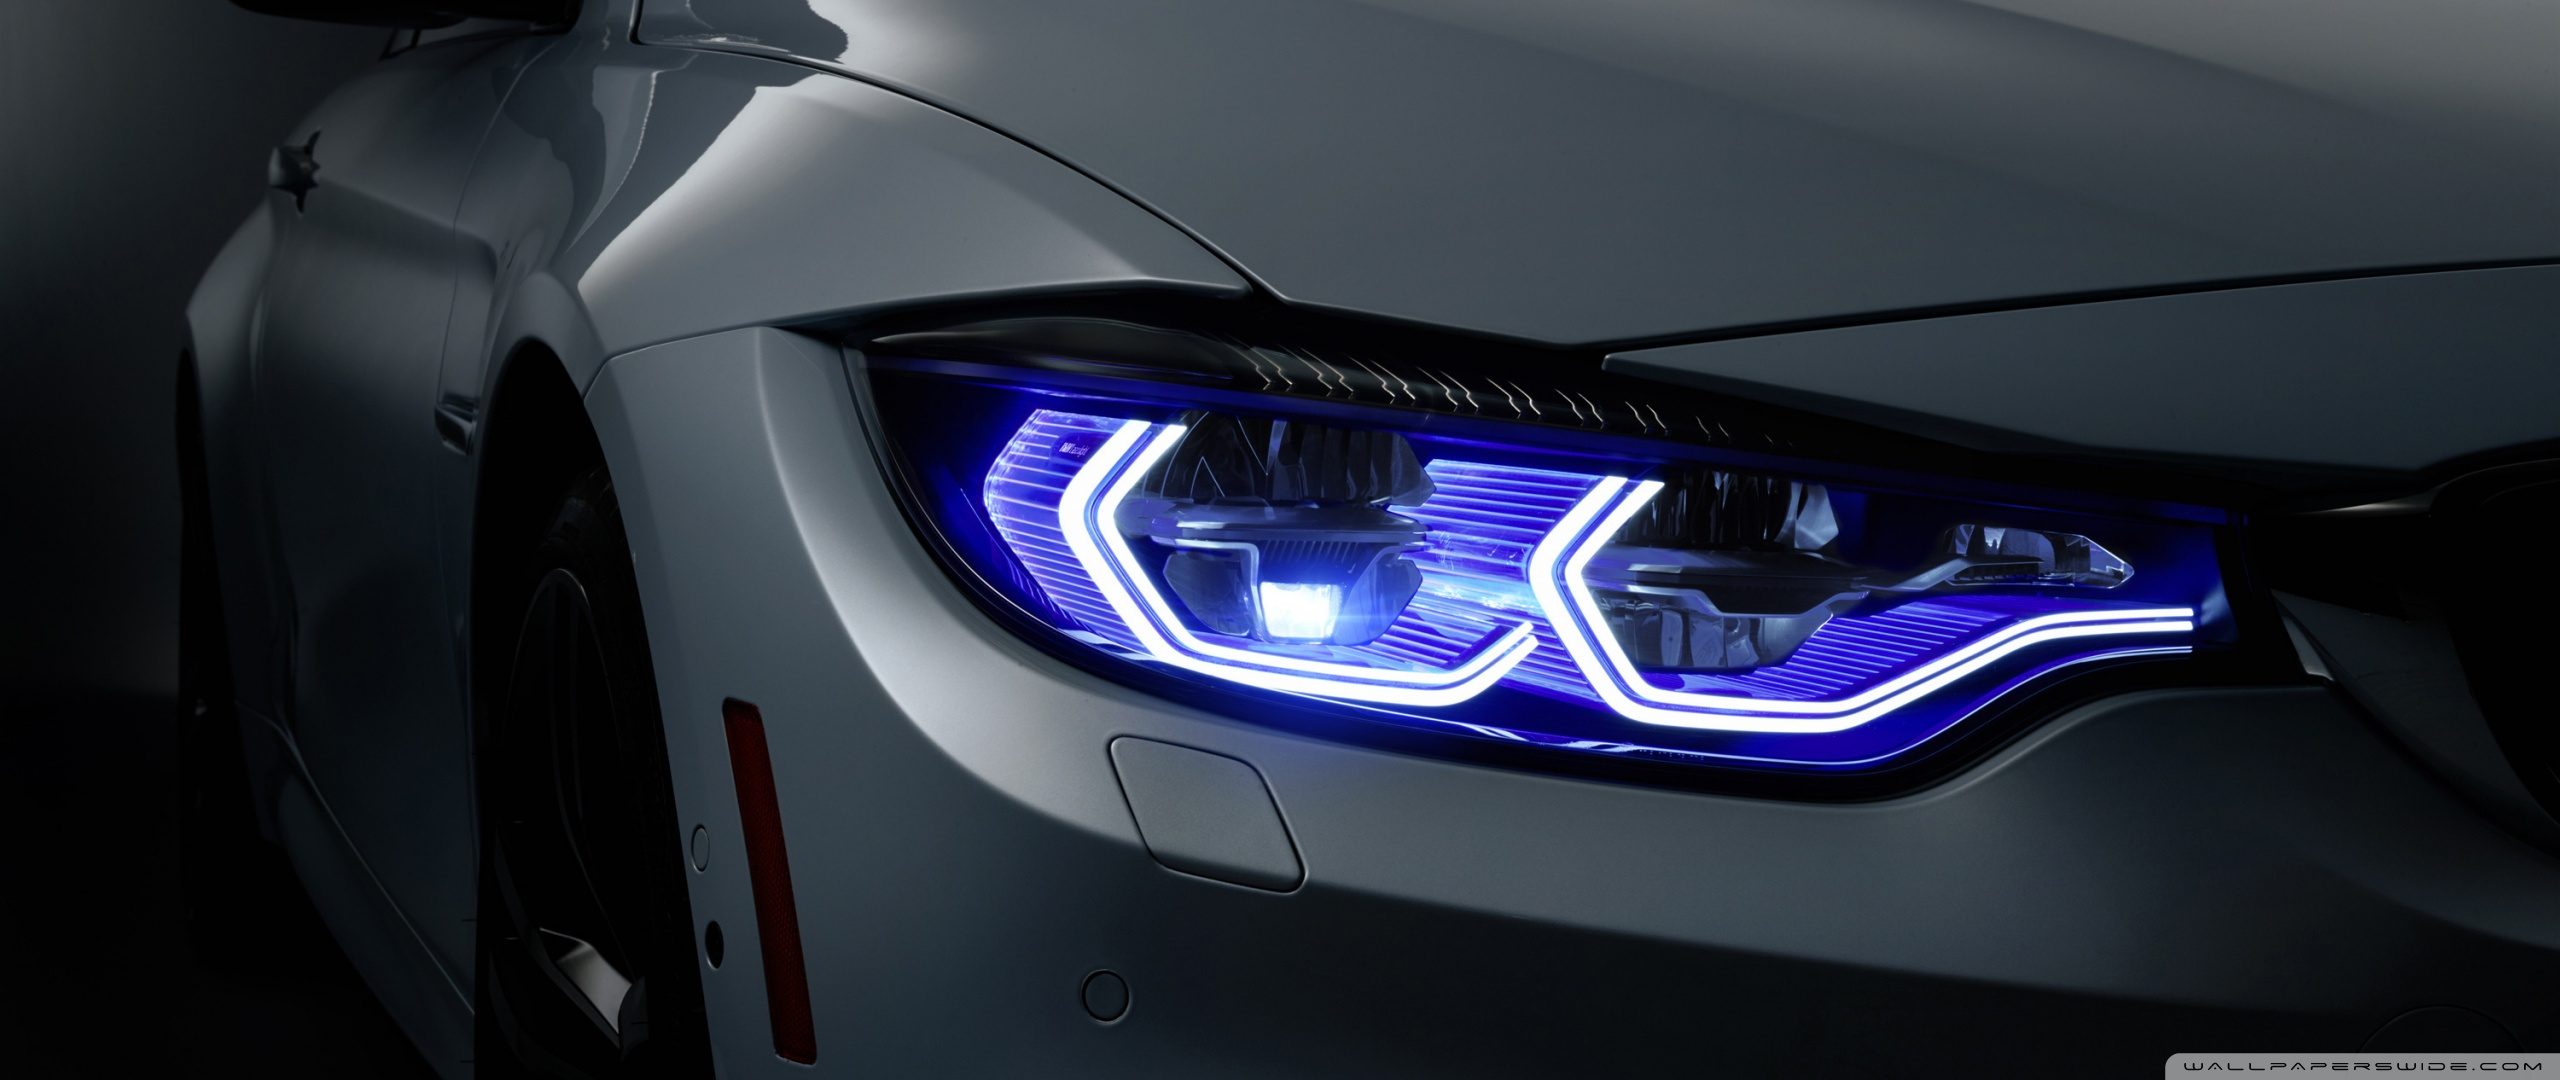 BMW Xenon Headlights        4K HD Desktop Wallpaper for     Dual Monitor     UltraWide 21 9